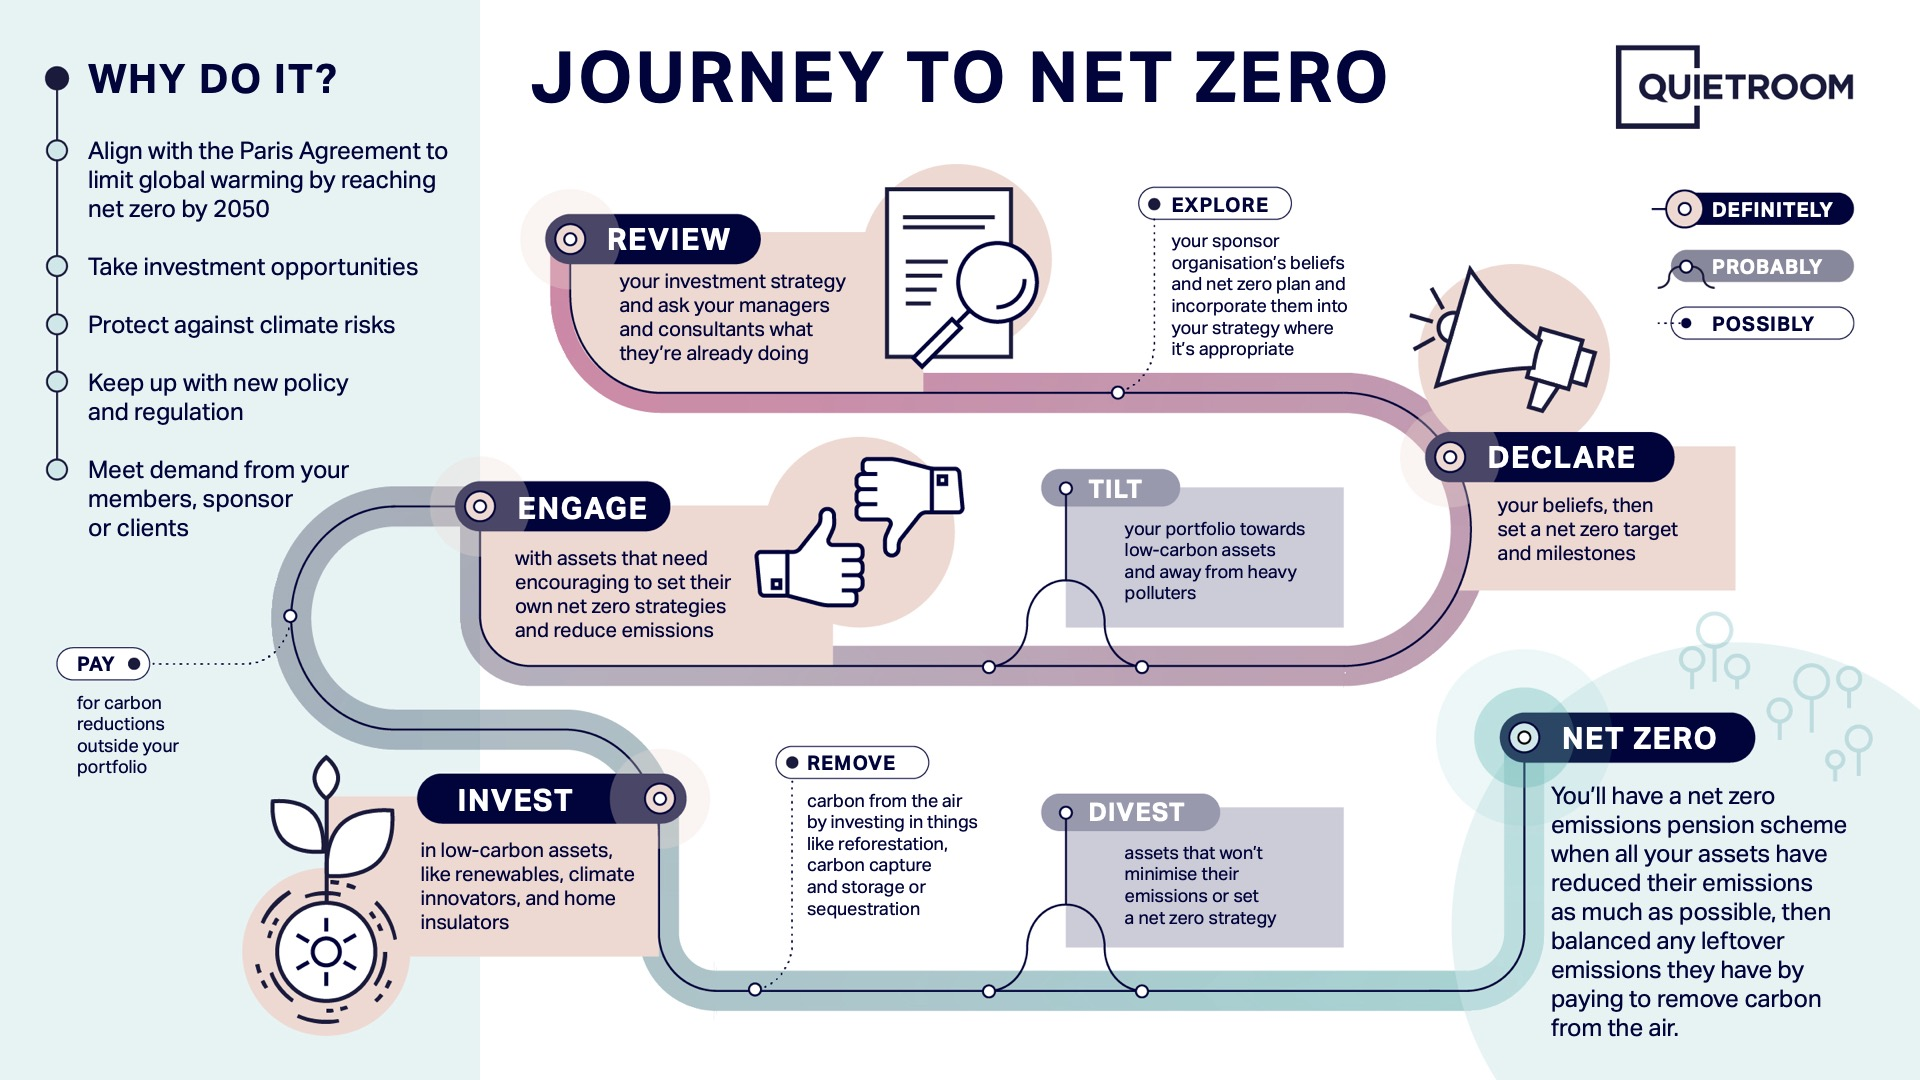 Visual description of how a pension scheme might align with a net zero target